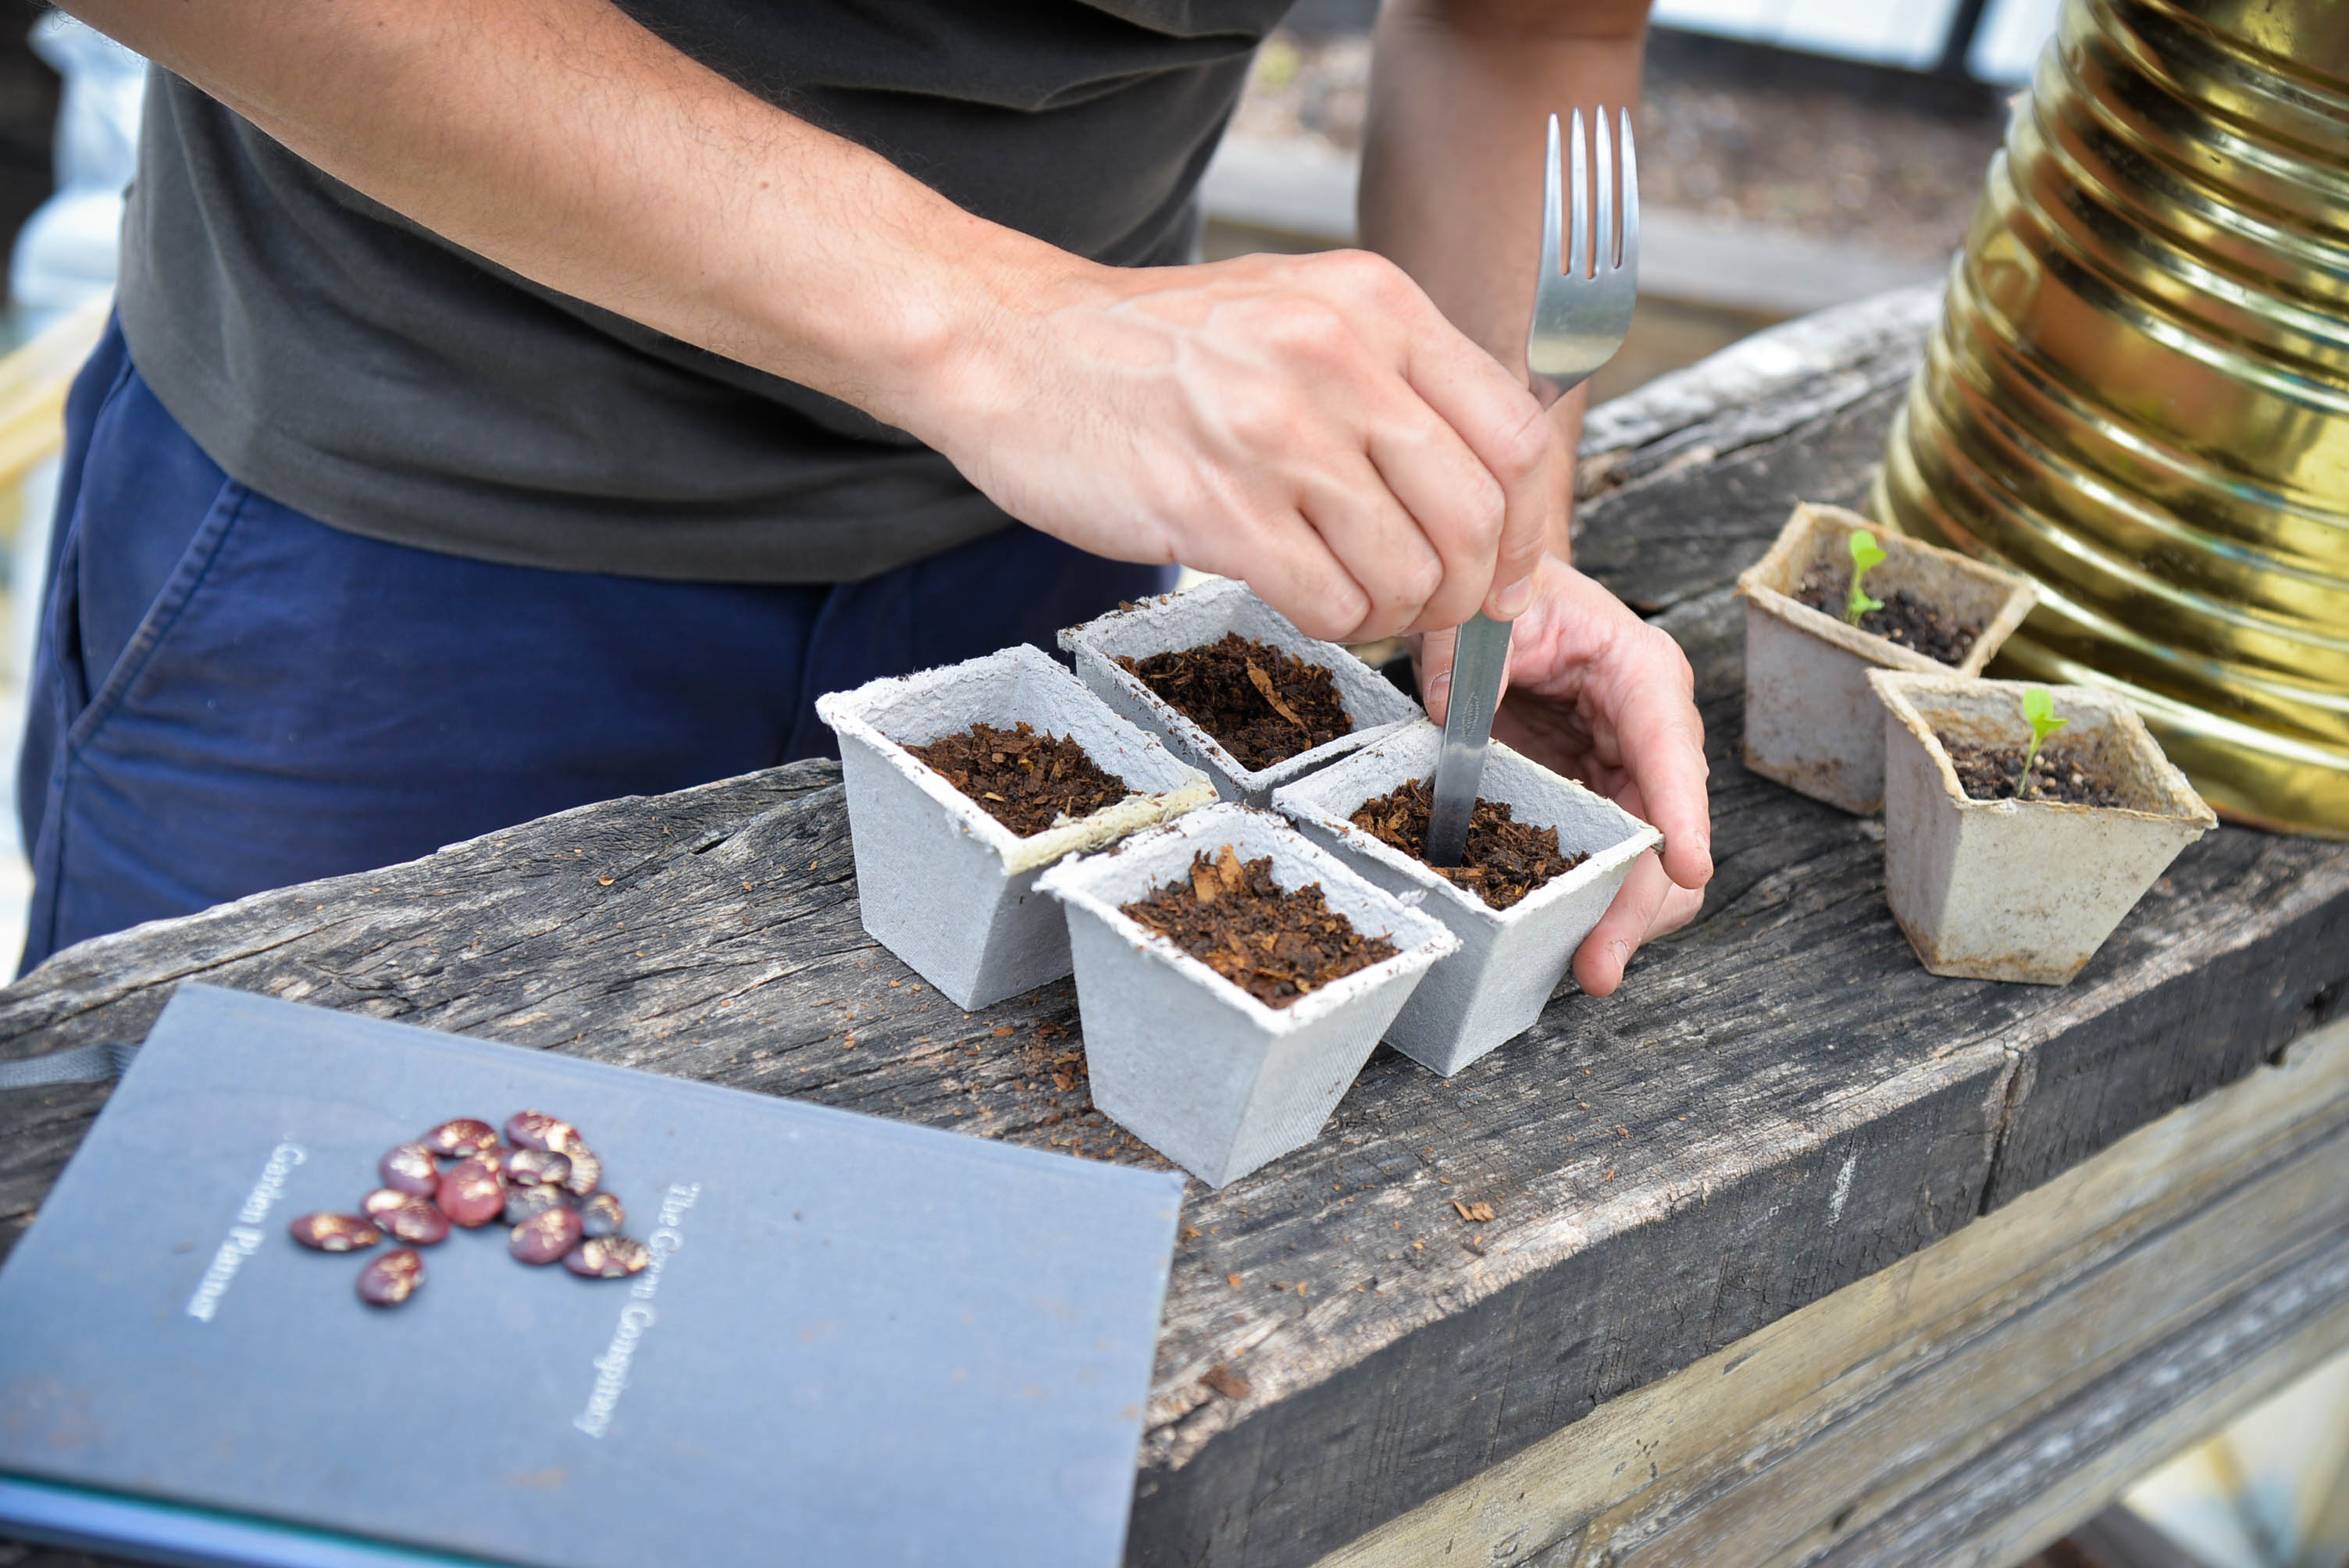 3 things to consider when starting your growing space